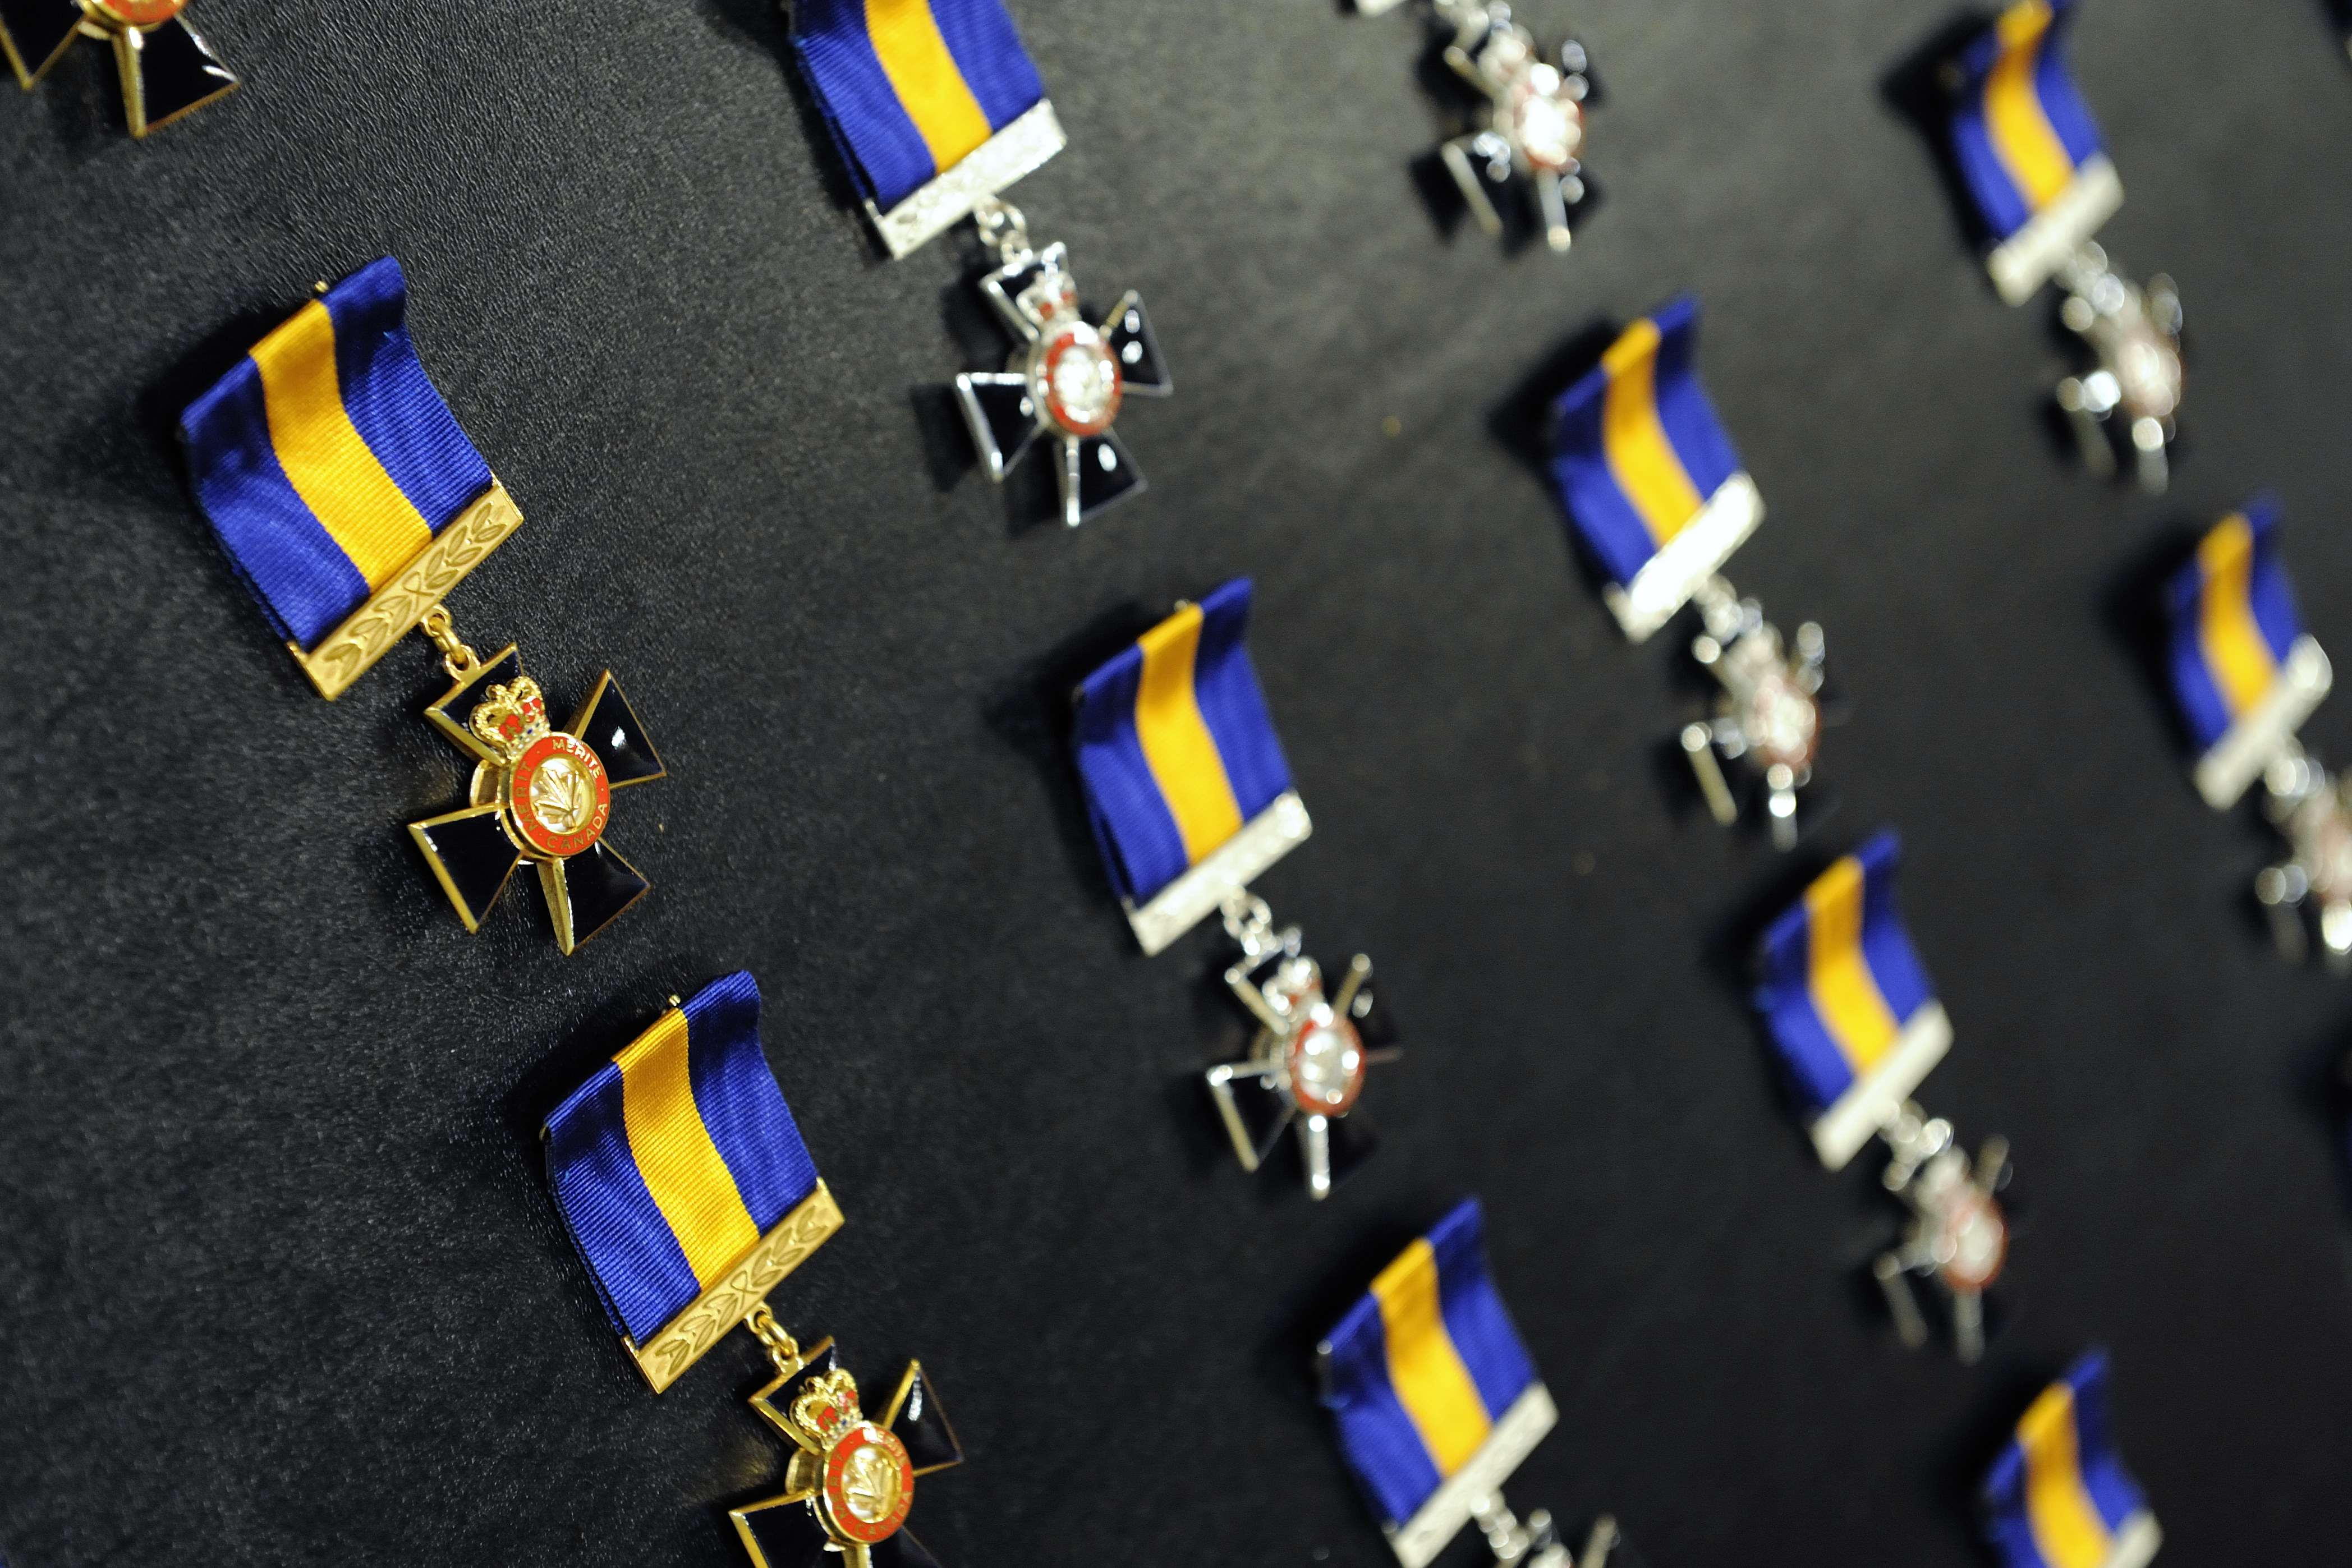 The Governor General, who is chancellor of the Order of Merit of the Police Forces, bestowed the honour on 1 Commander, 9 Officers and 24 Members.